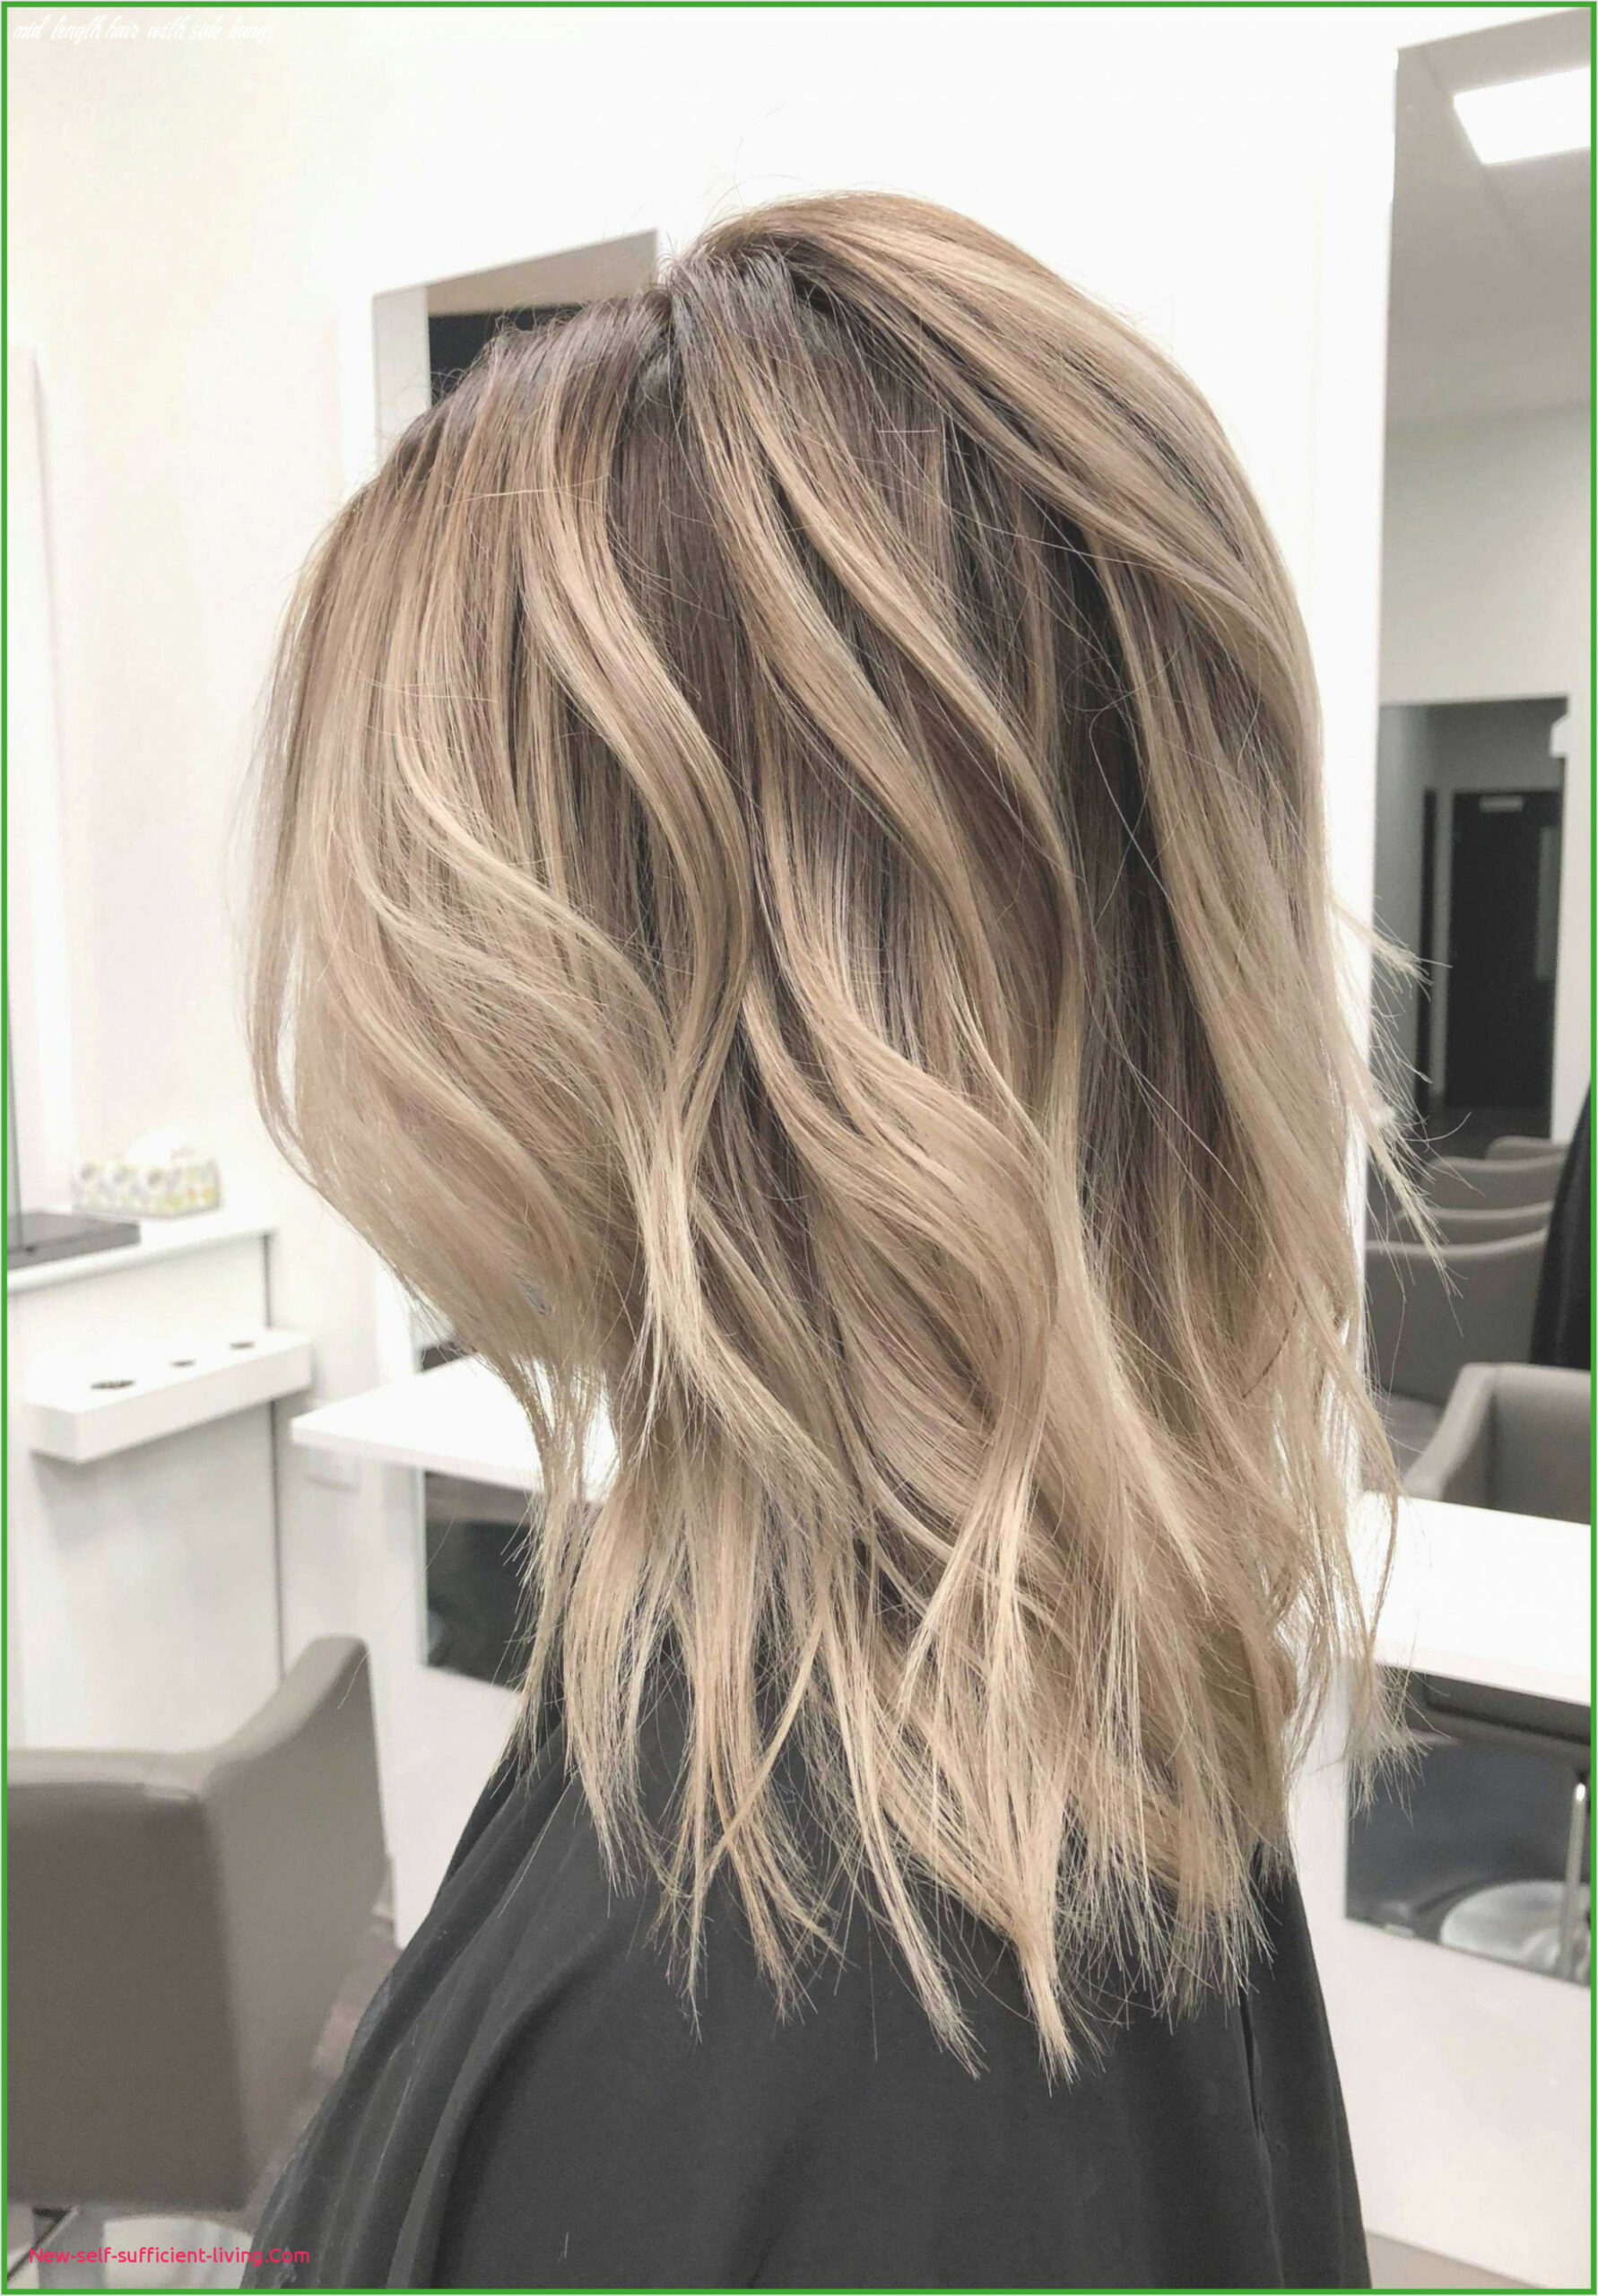 Medium Length Hair with Side Bangs Fresh Unique Hairstyles for ...